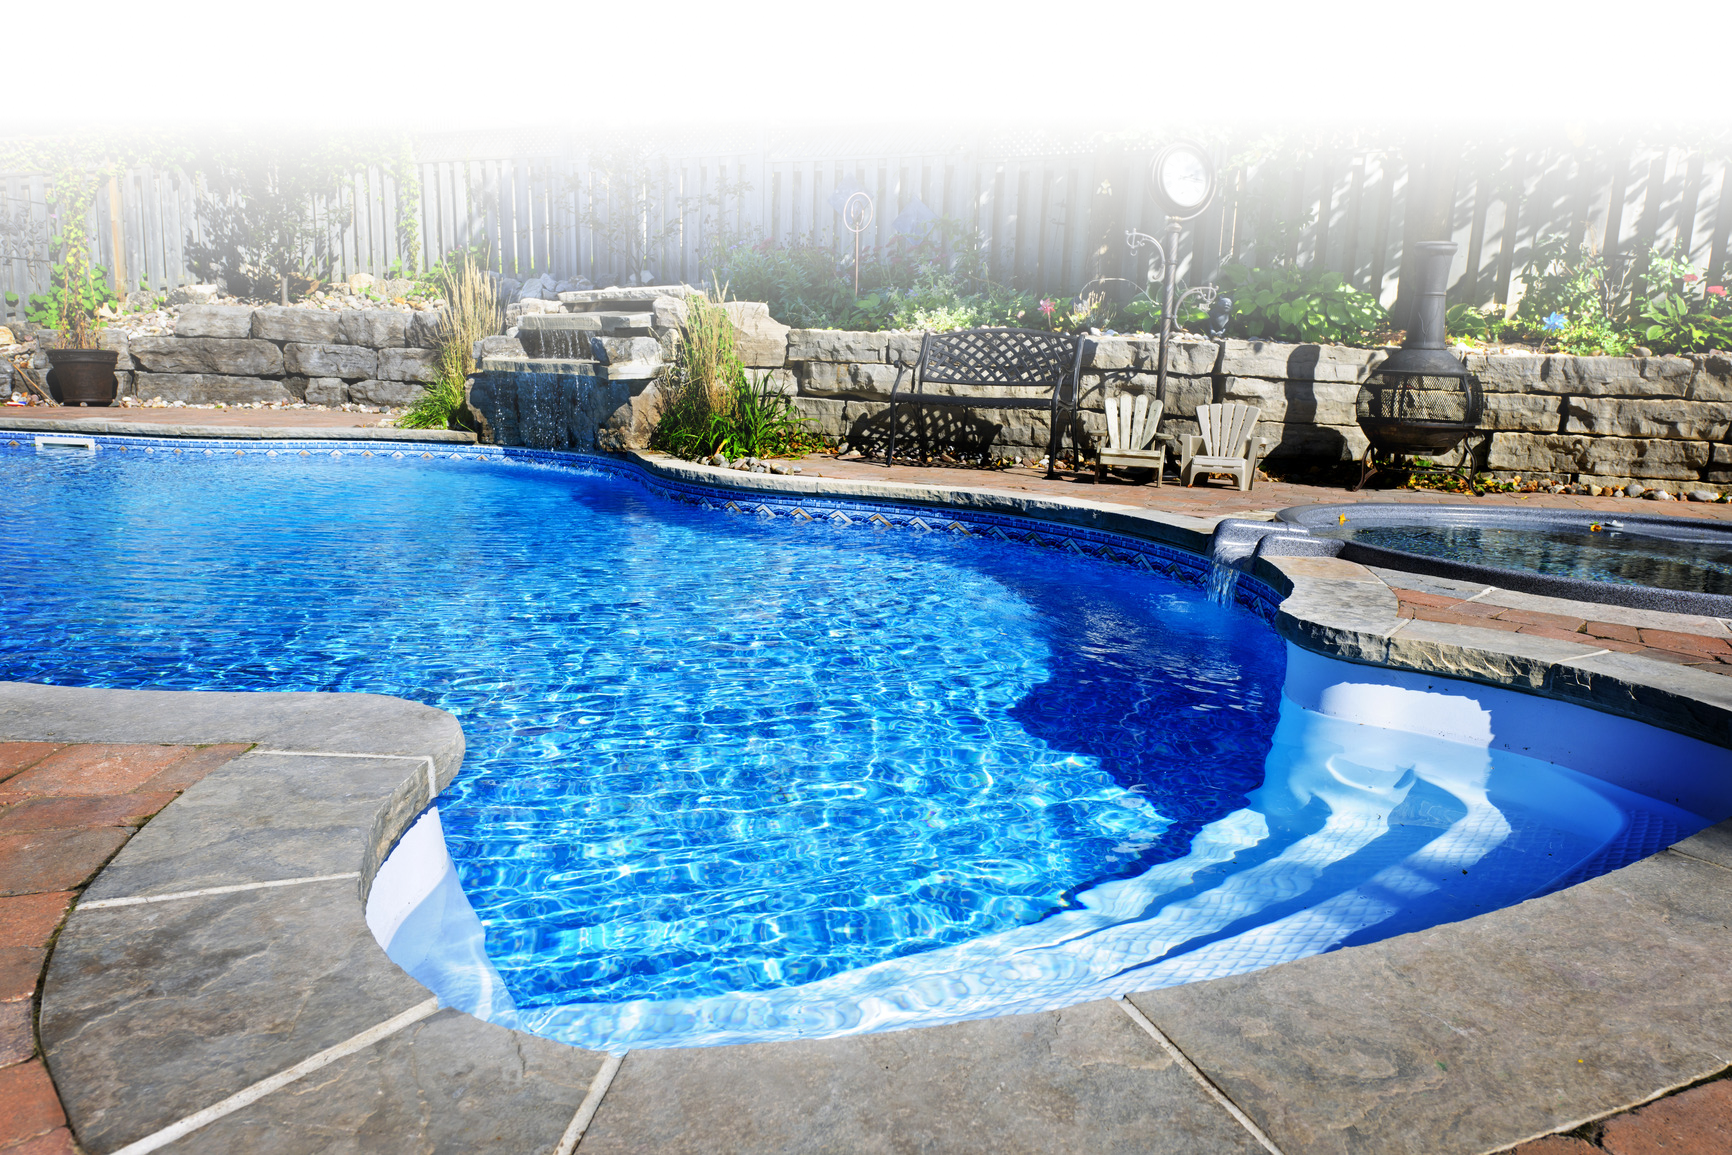 Professional Quality Pool & Spa Services